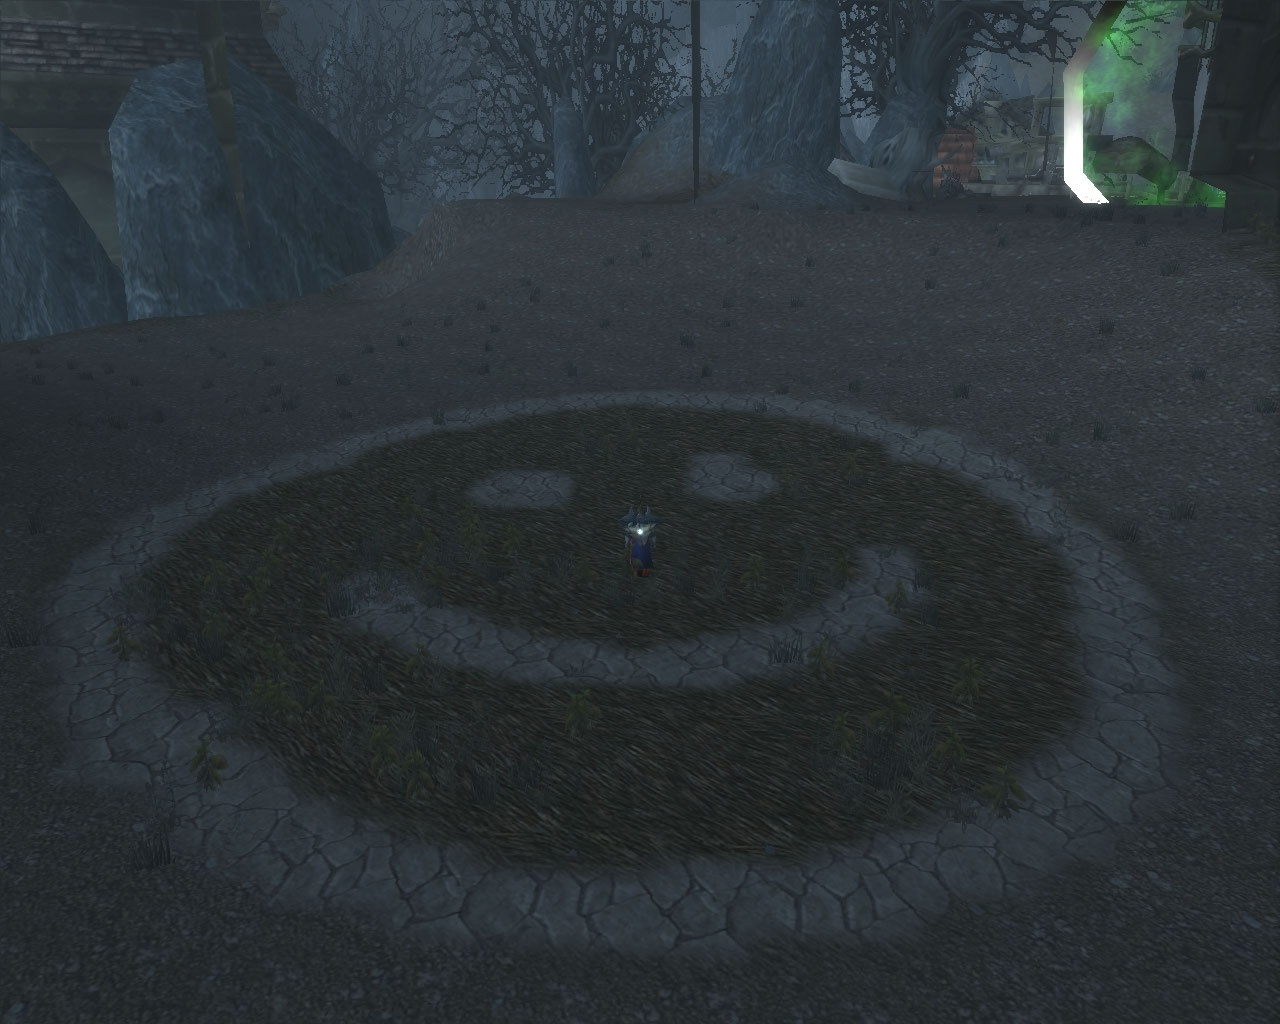 -There is a huge smiley face ...